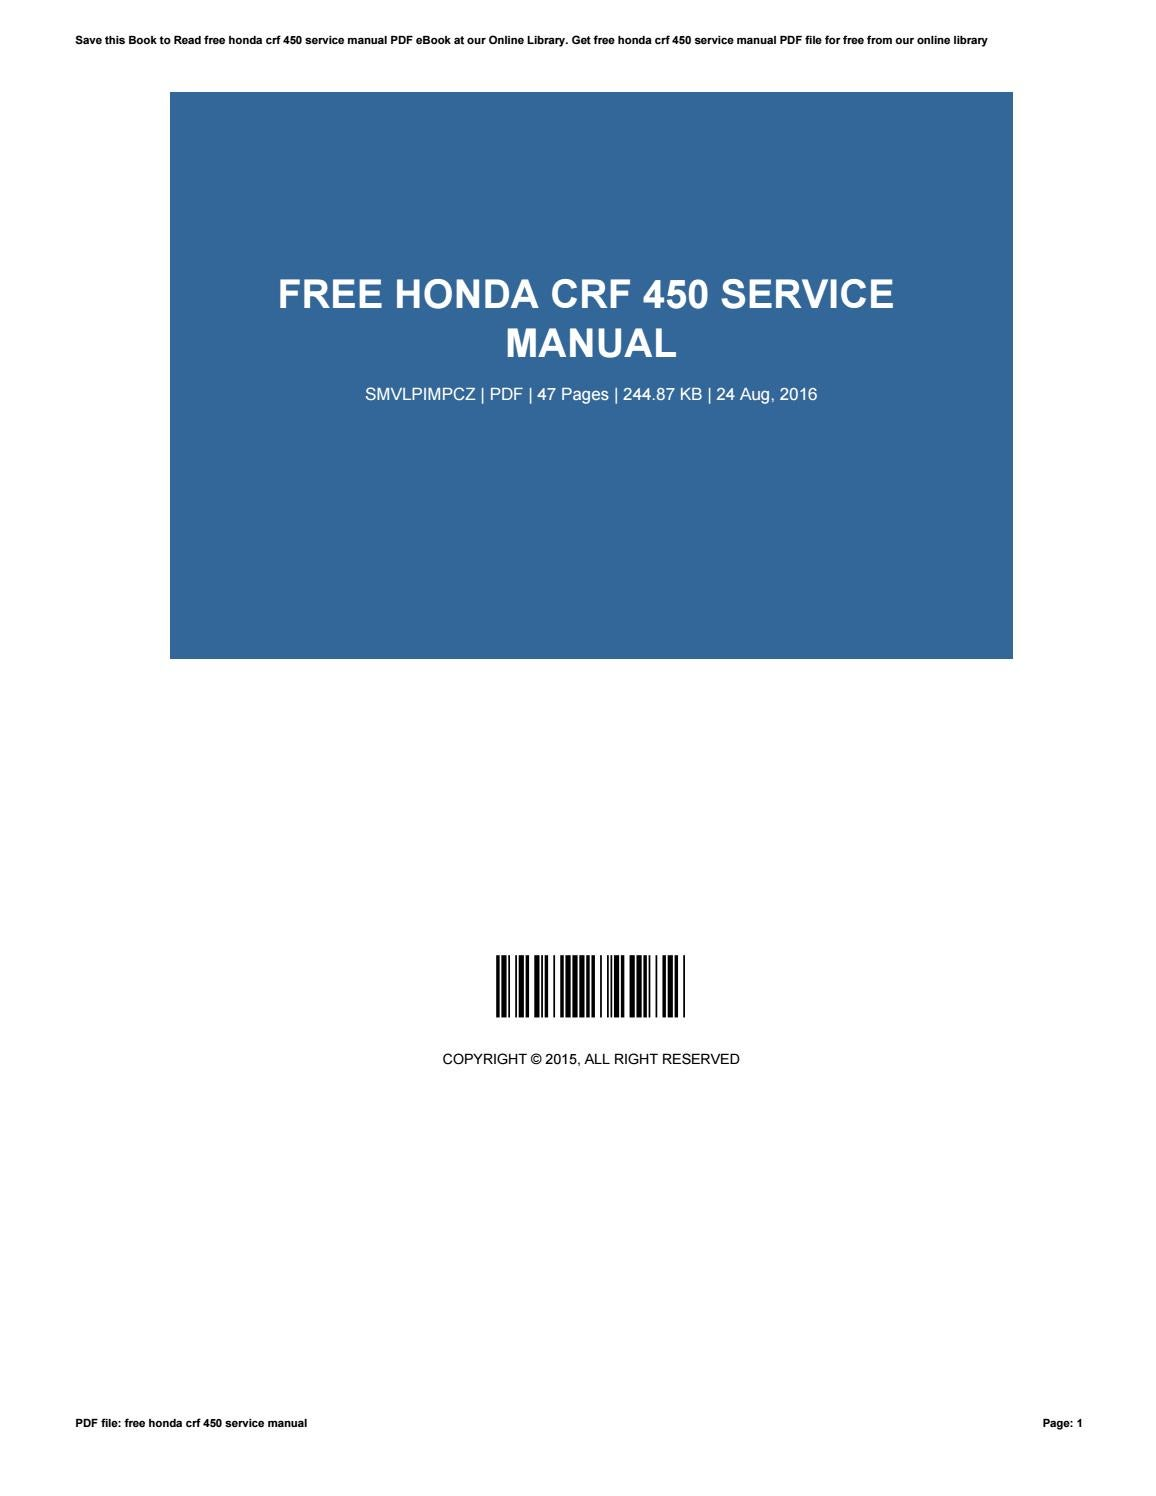 hight resolution of crf 450 service manual download fuse box diagram also 2008 ford f 250 owner39s manual further ford